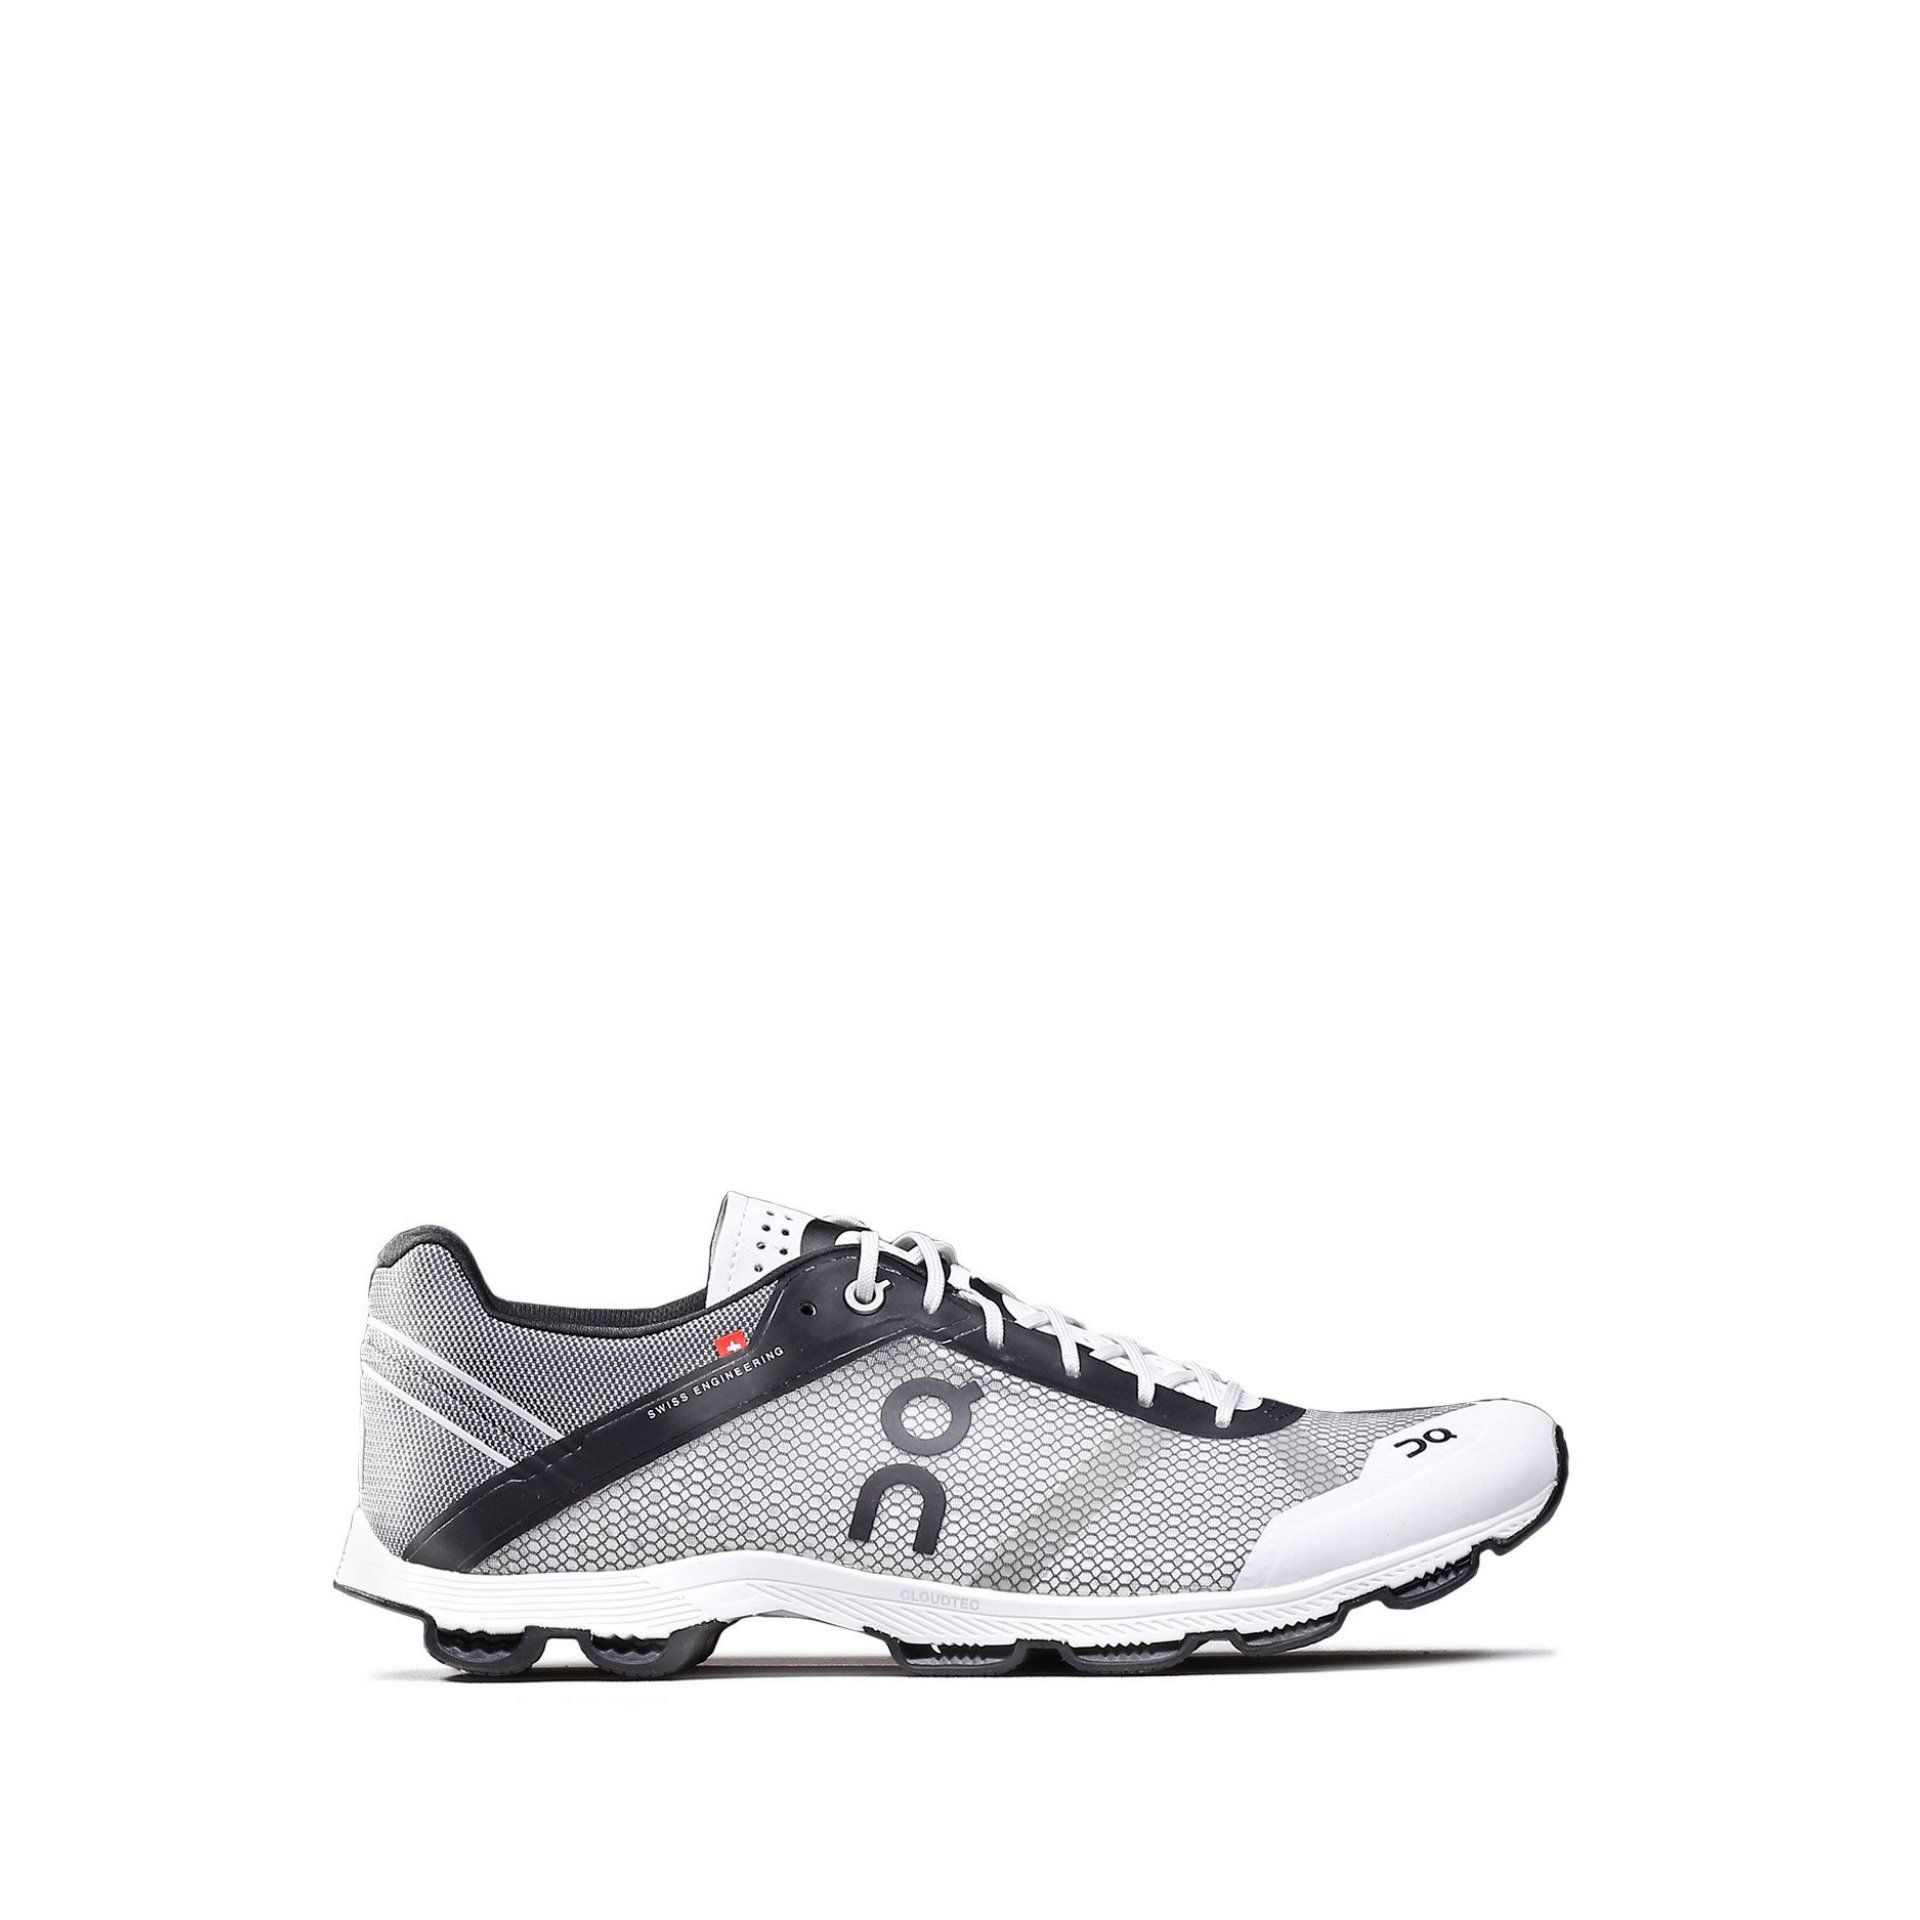 BUTY DO BIEGANIA ON RUNNING CLOUDRUSH W BLACK|WHITE 1